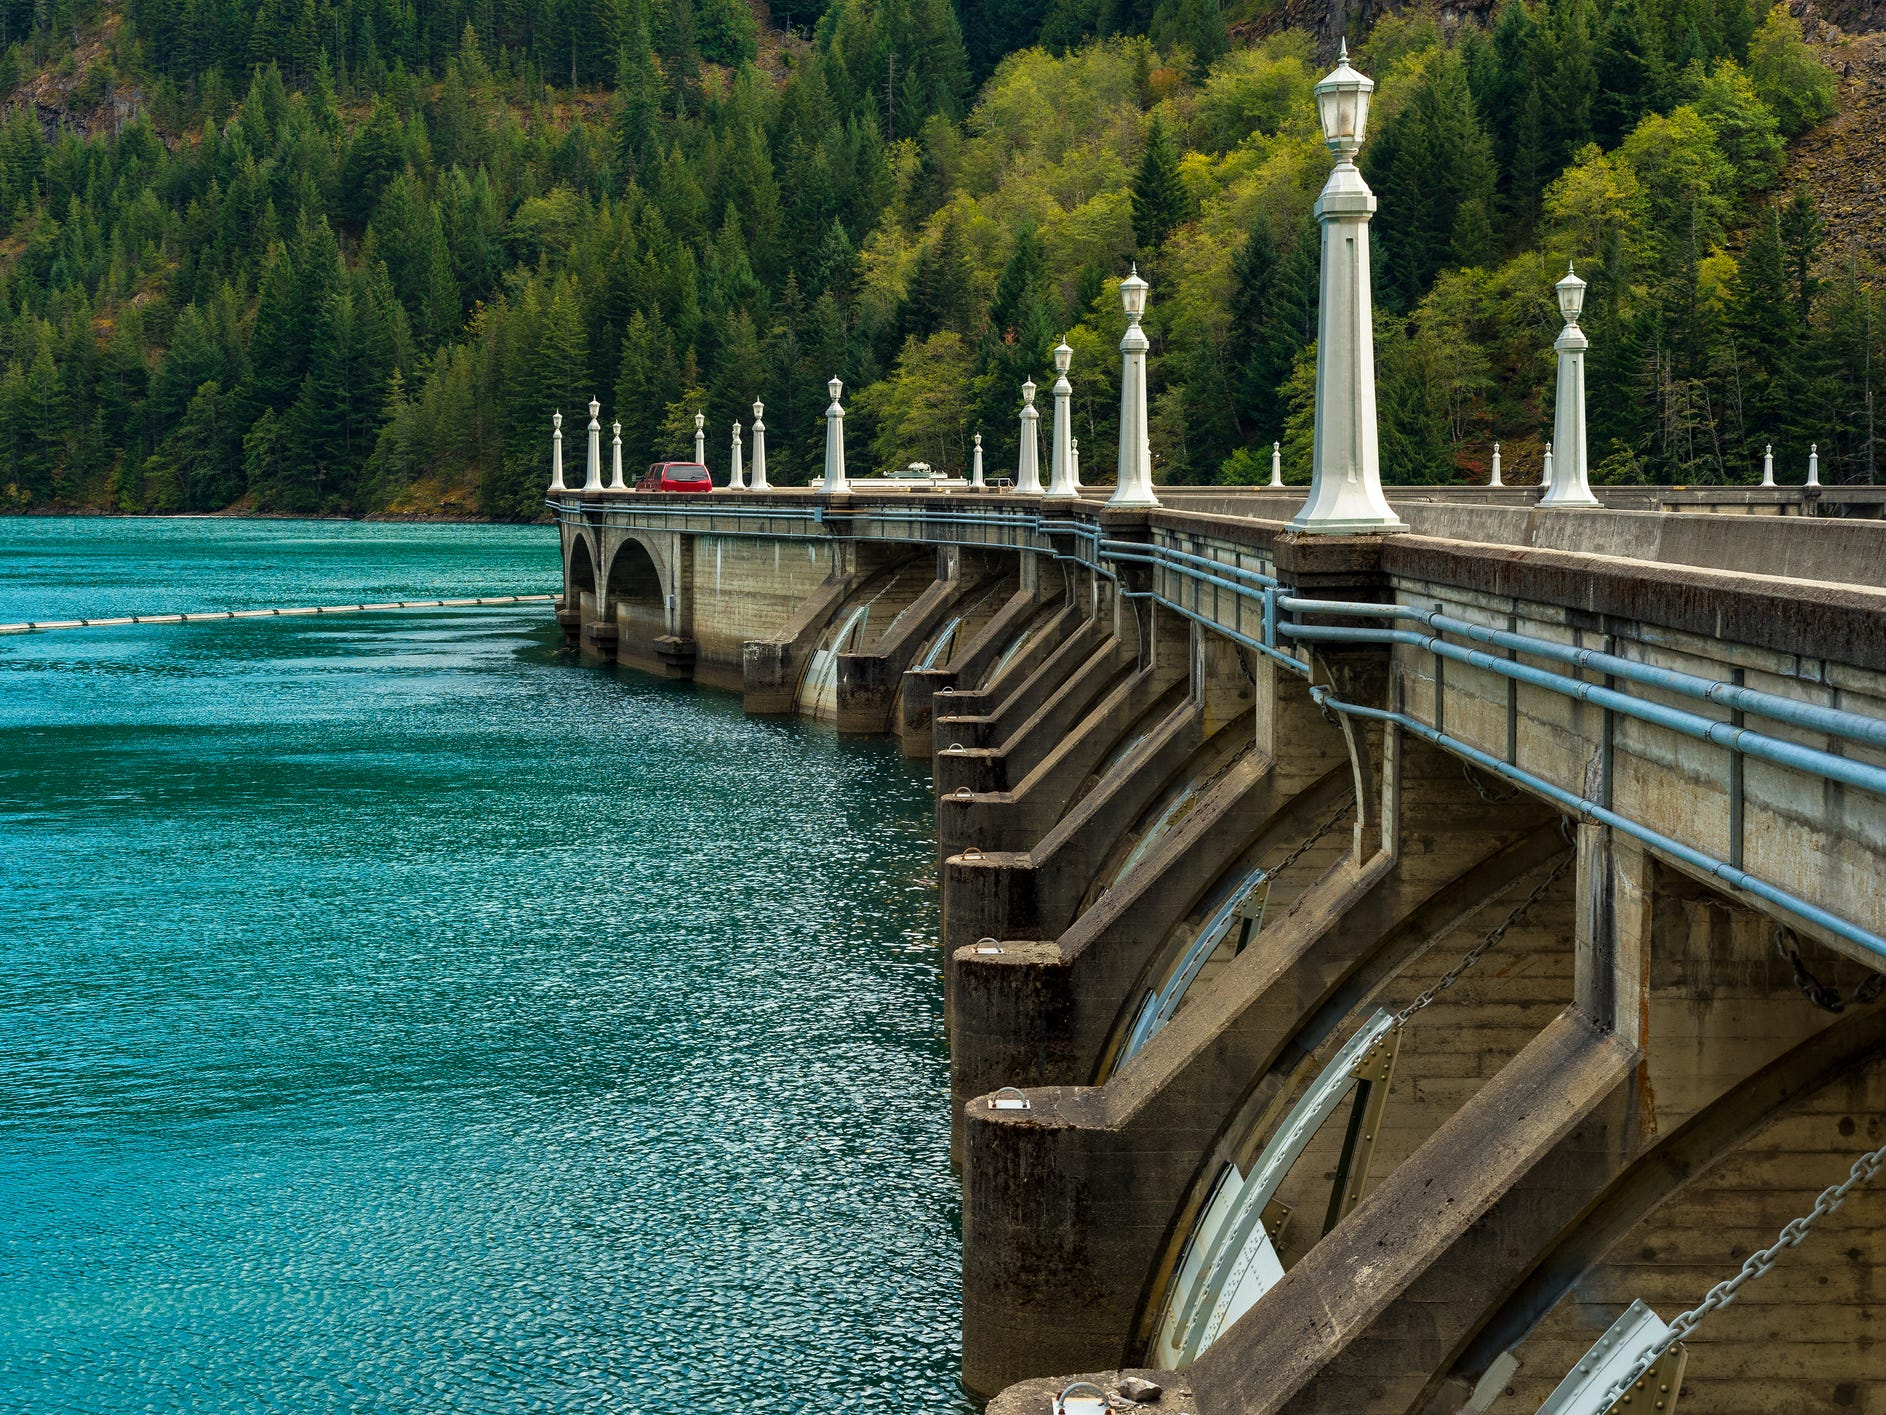 Diablo Dam in Washington.